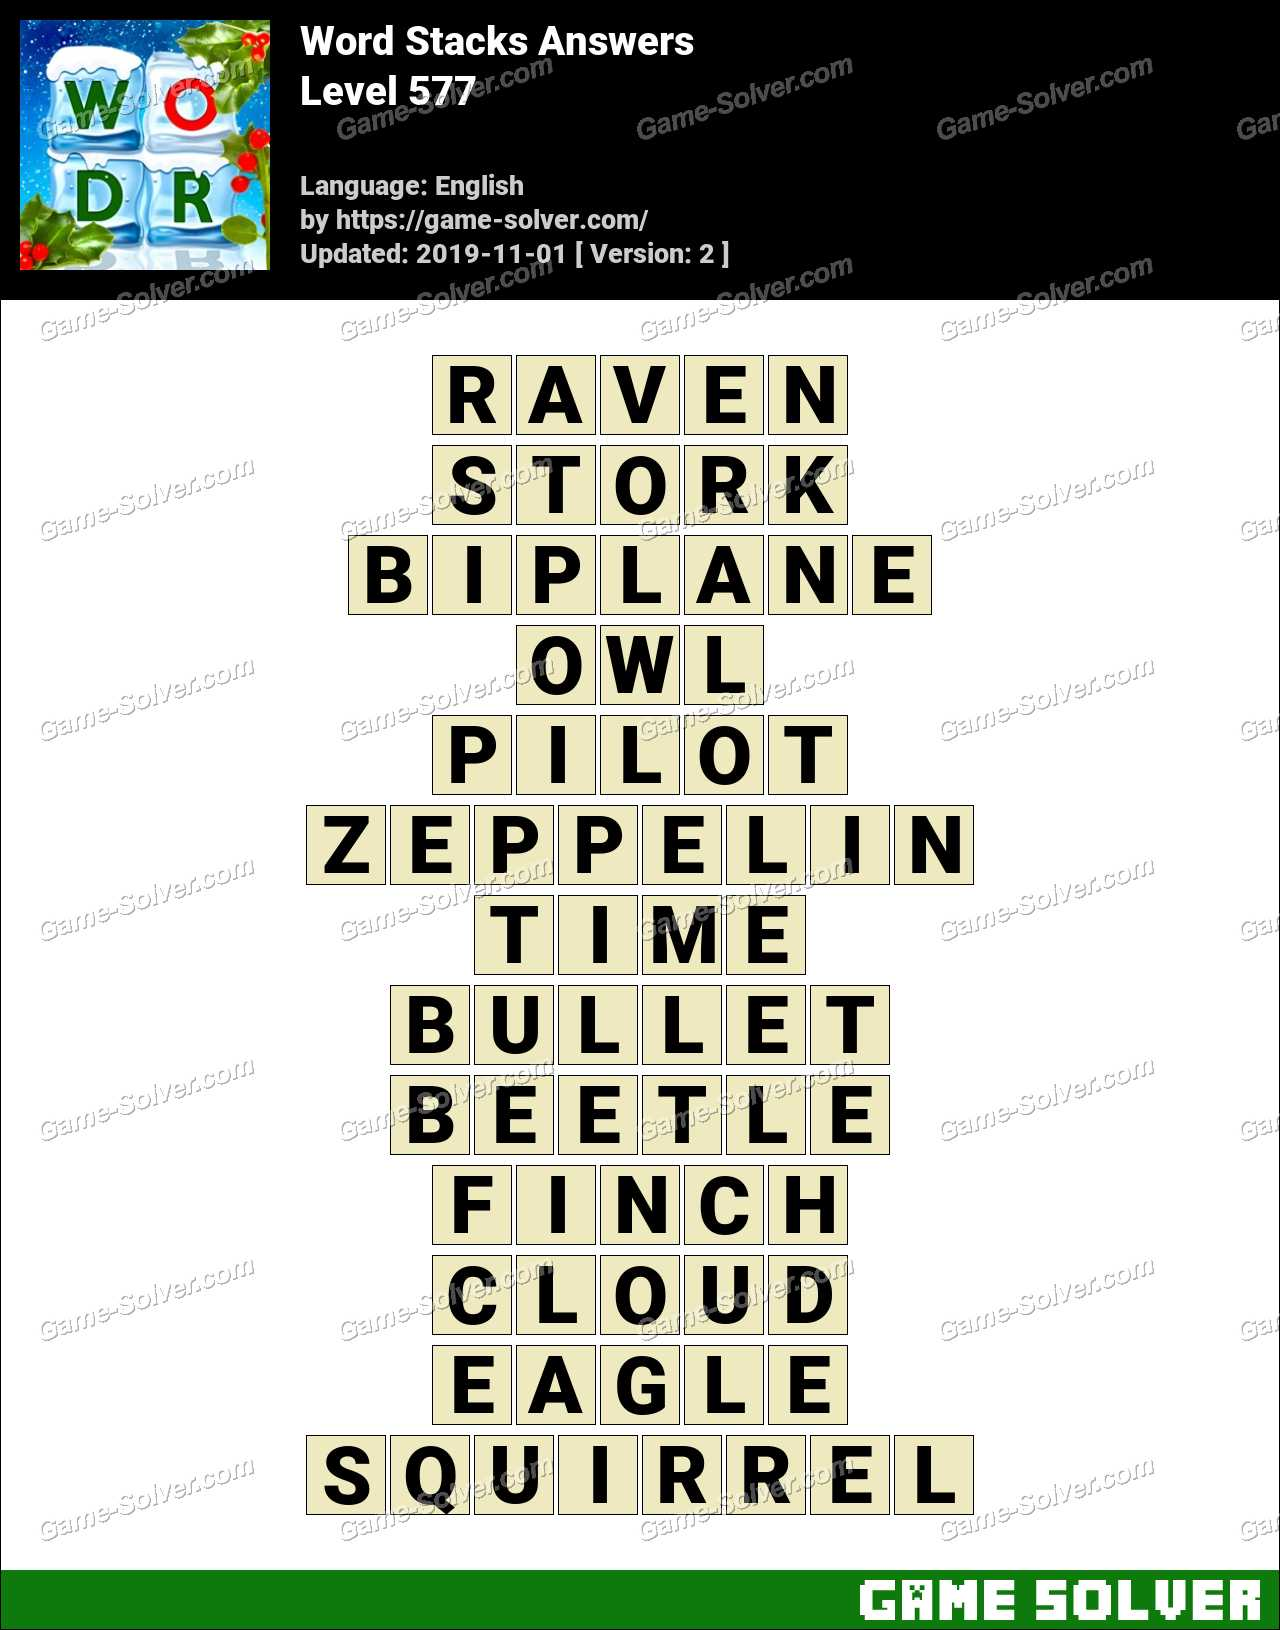 Word Stacks Level 577 Answers